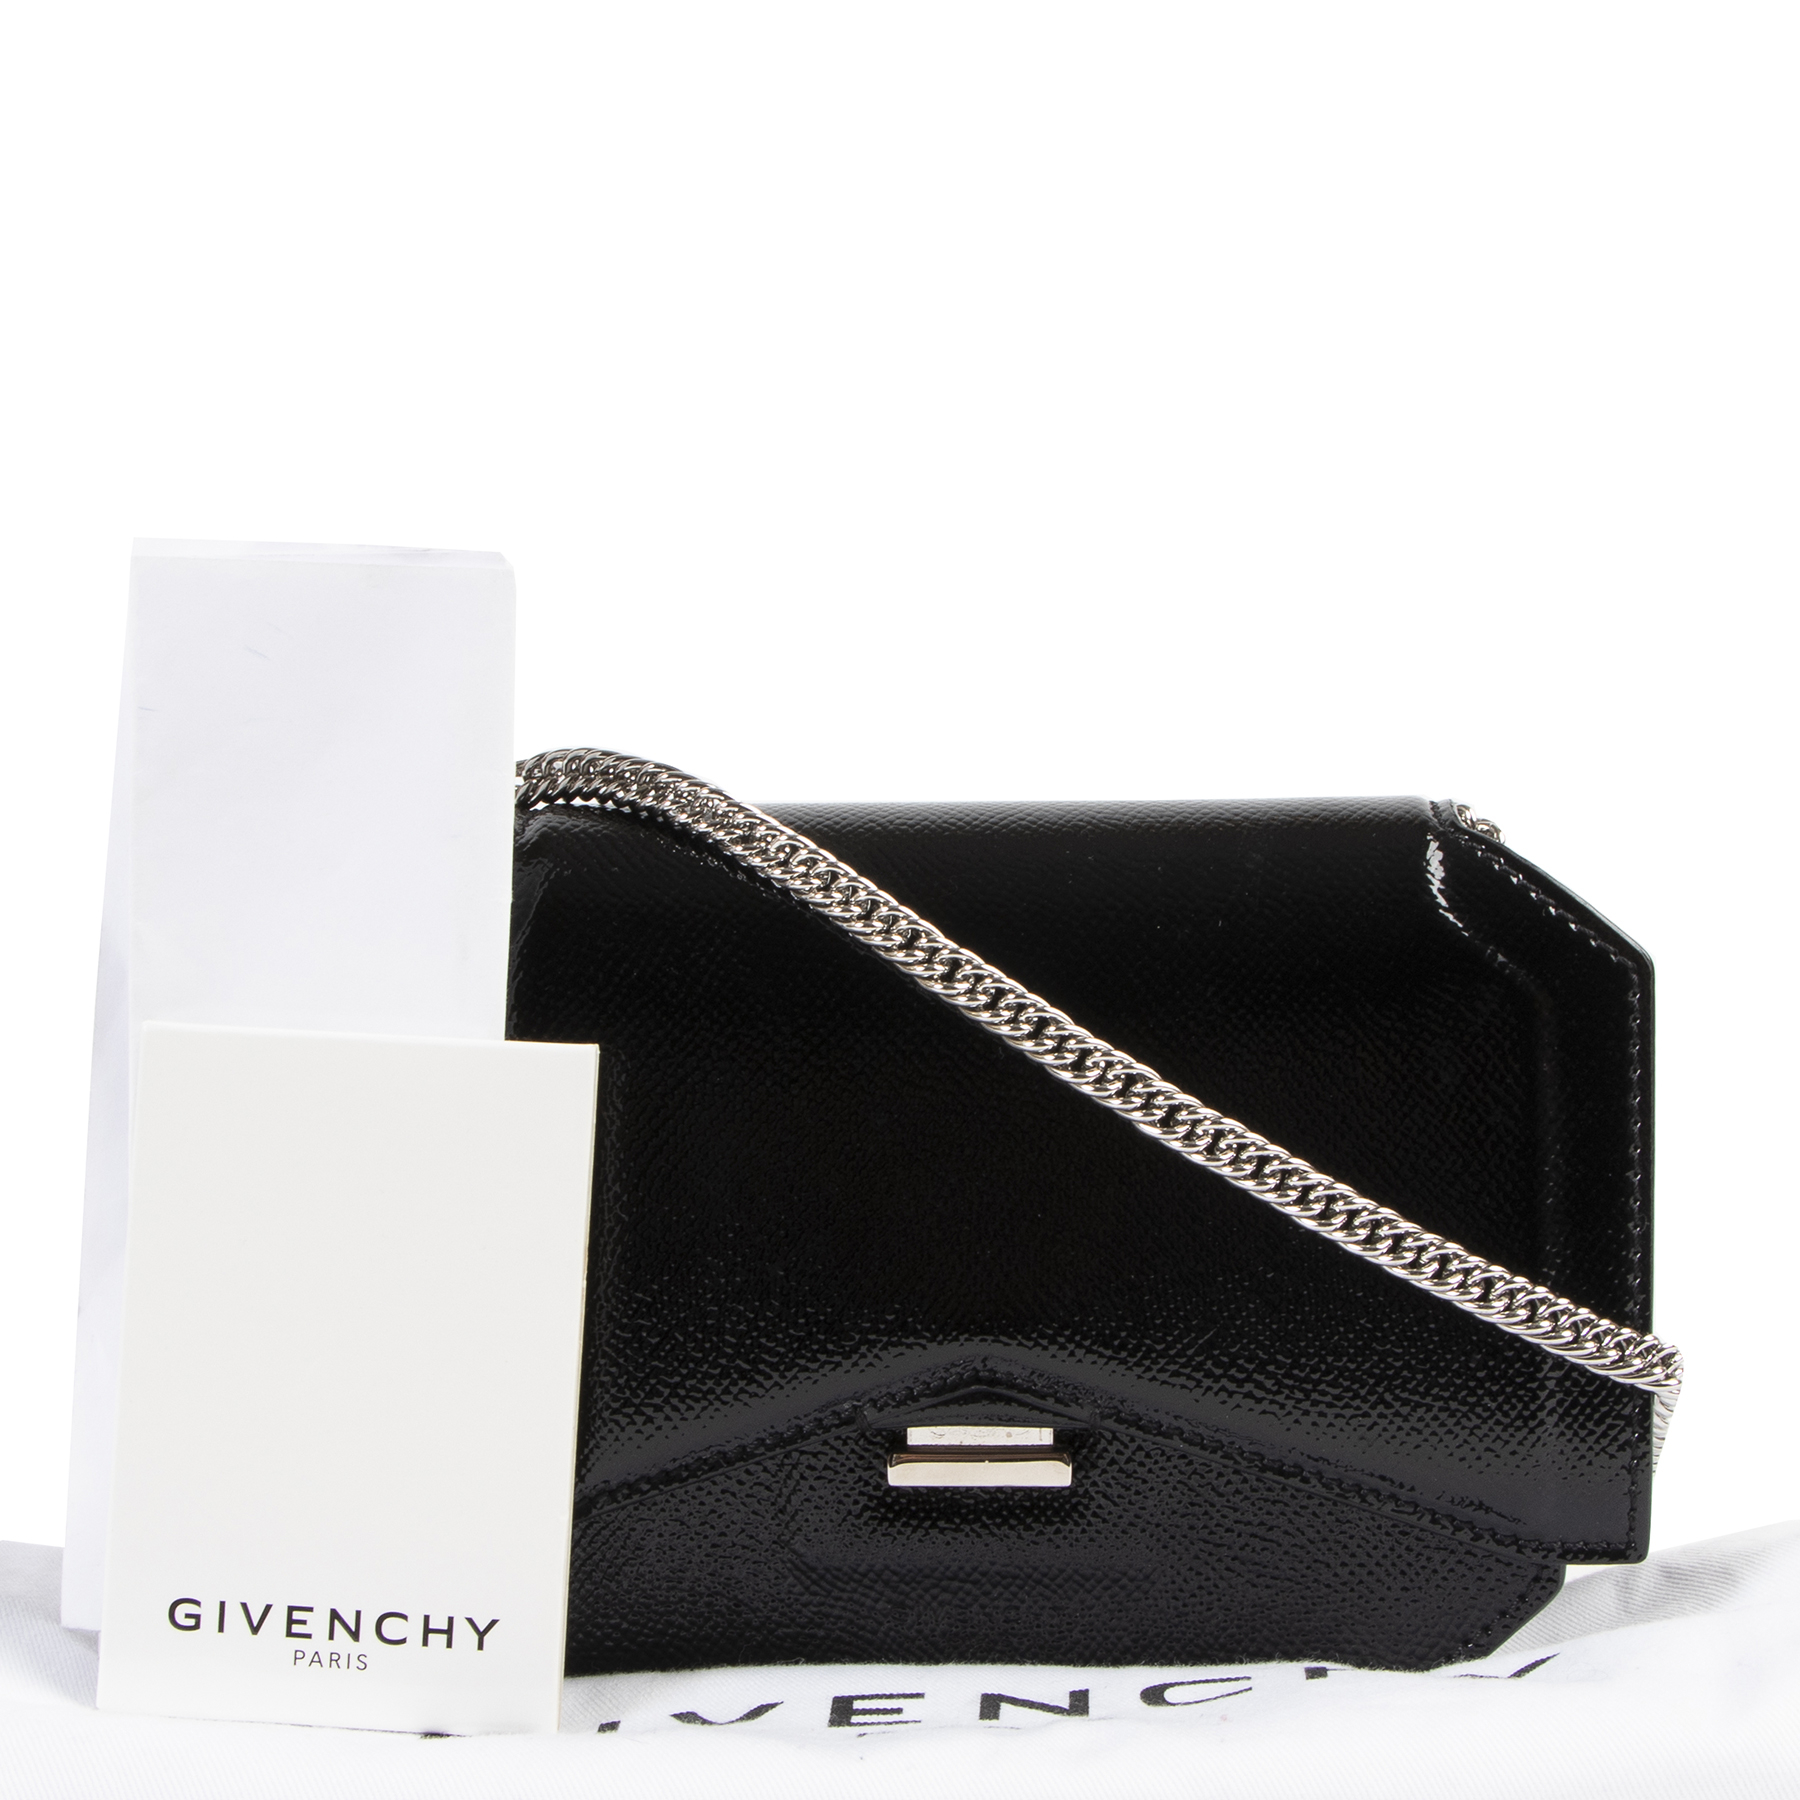 Givenchy Mini Bow-Cut Crossbody Bag for the best price at Labellov